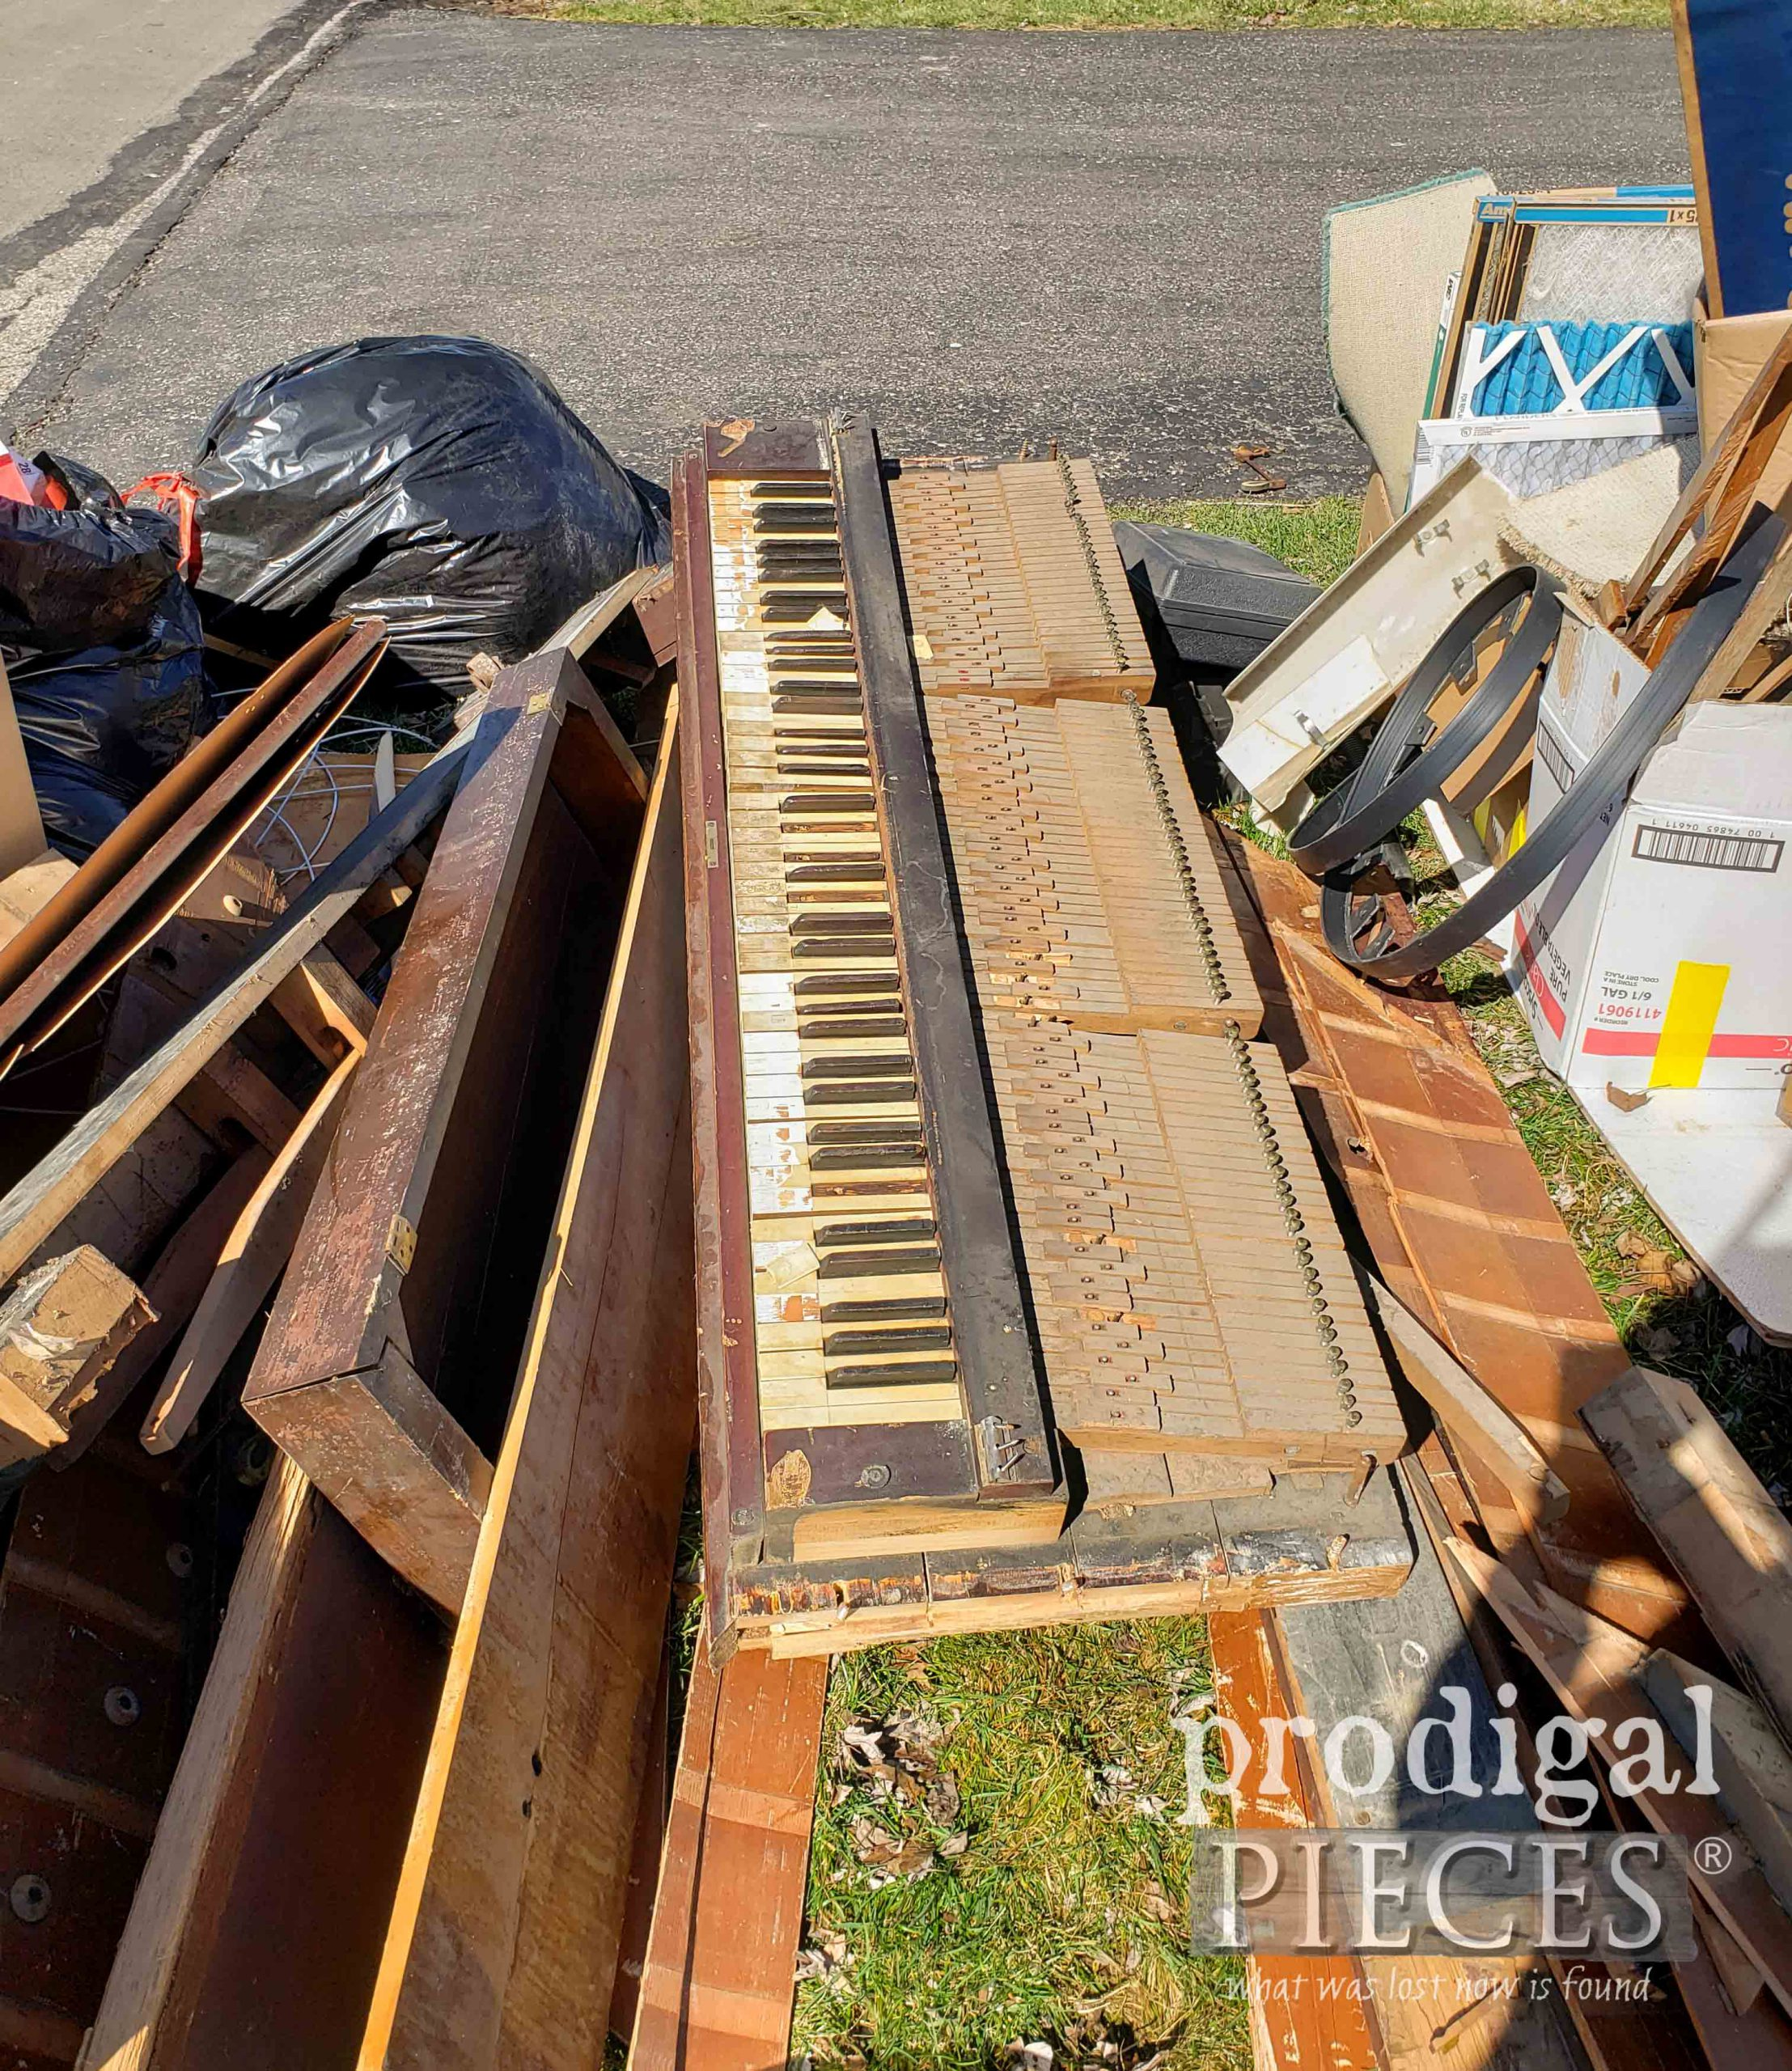 Antique Piano Keyboard Found Curbside by Prodigal Pieces   prodigalpieces.com #prodigalpieces